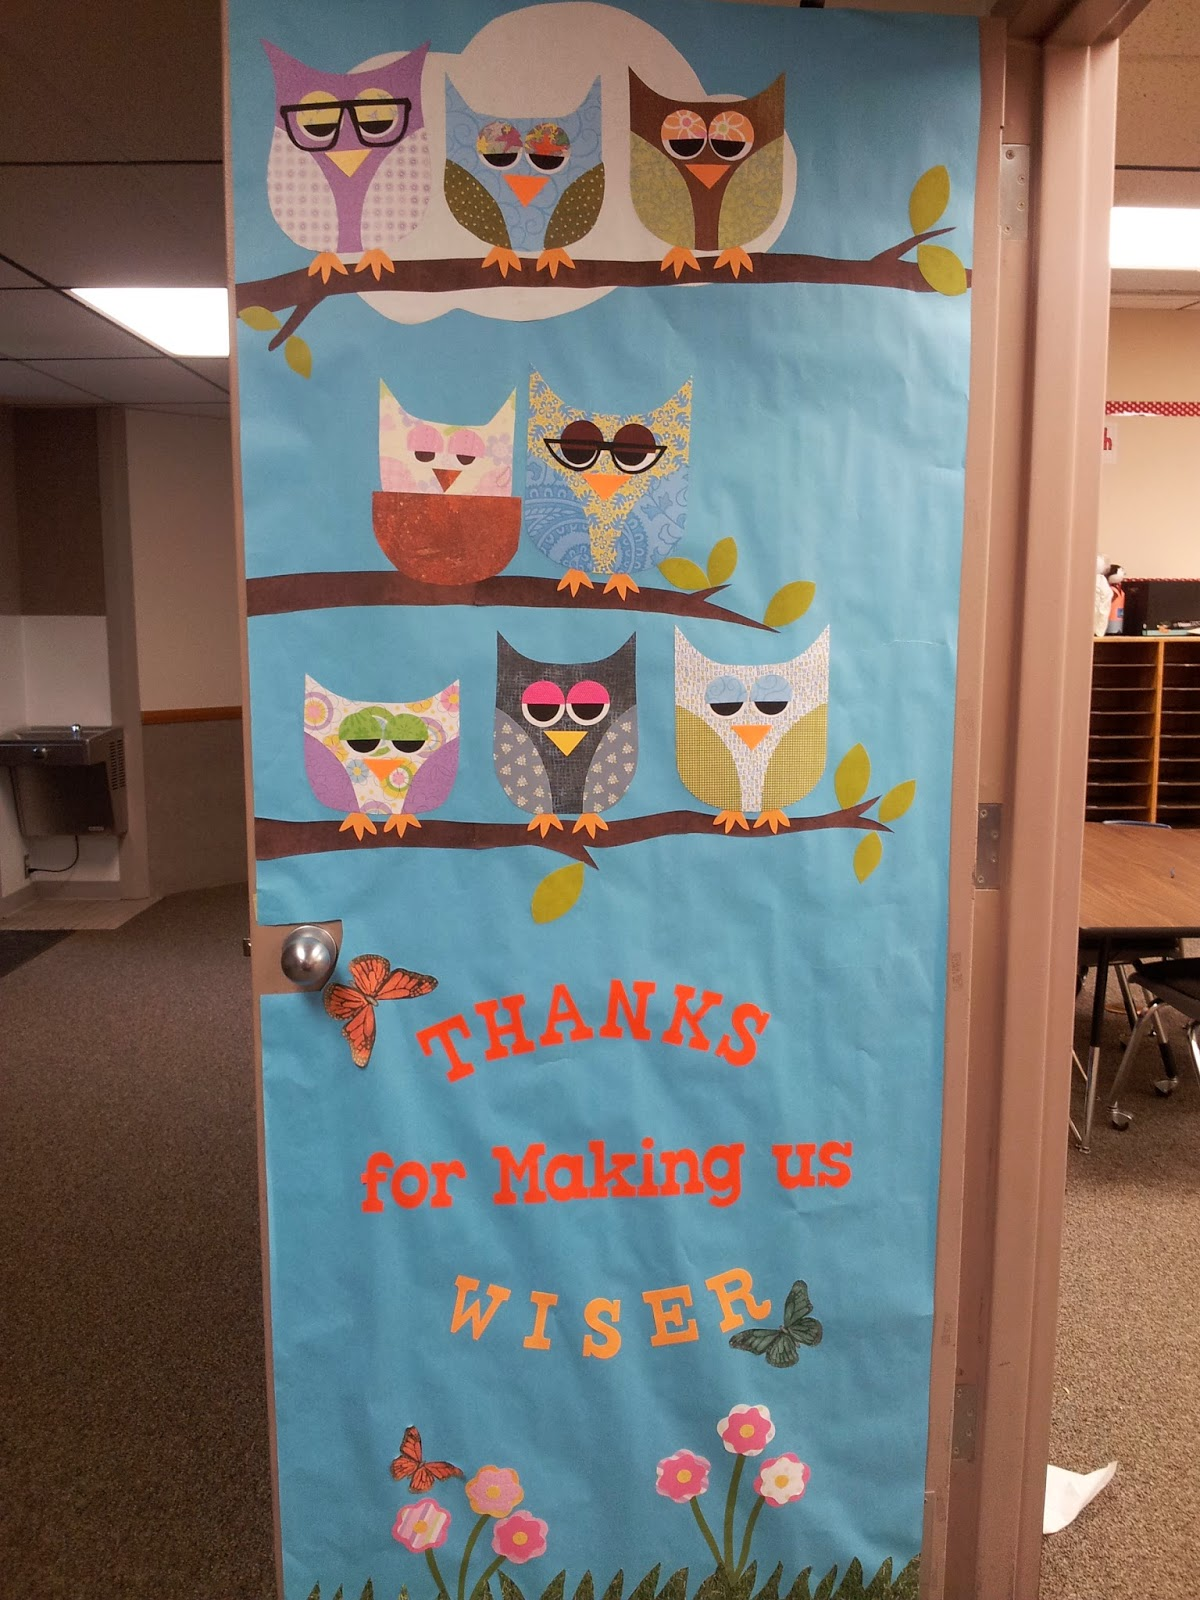 Teacher Appreciation Door Decorating Ideas : door decorating ideas - www.pureclipart.com